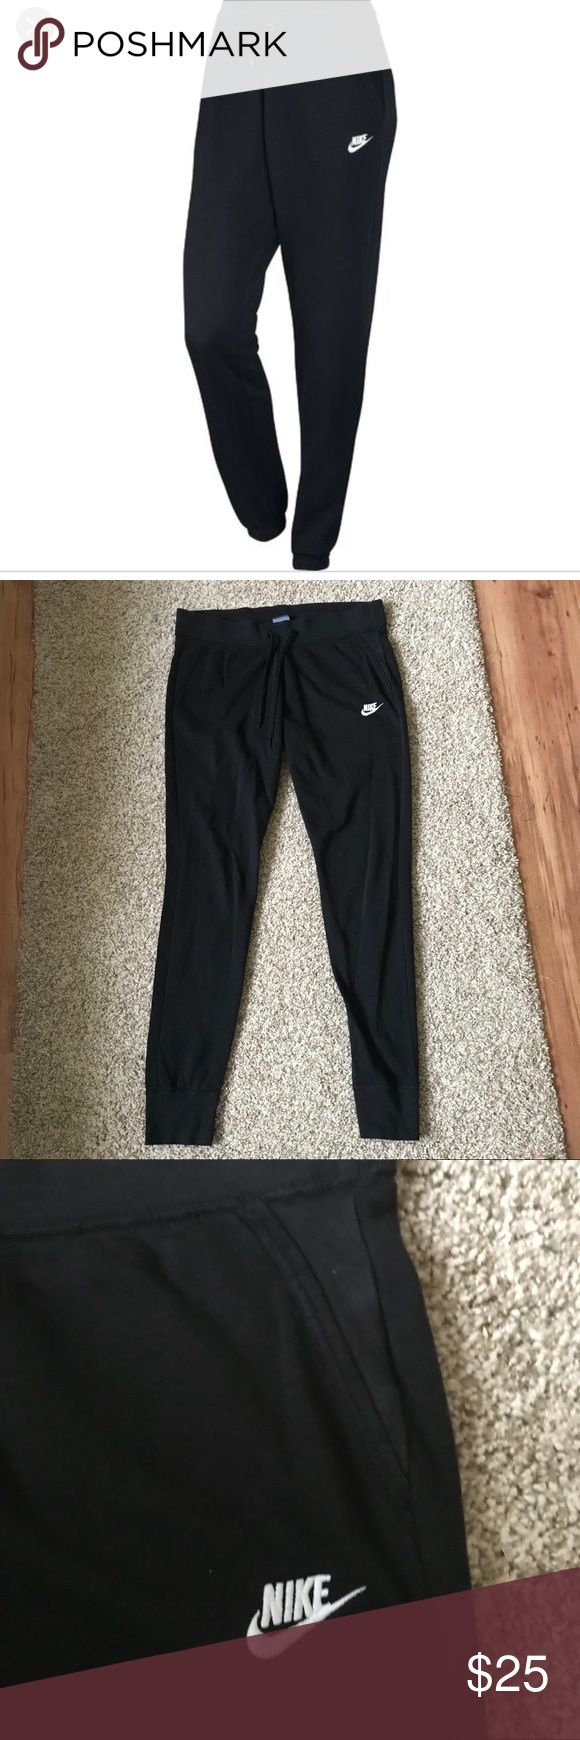 ‼️SALE‼️ Nike Slim Fit Joggers Sweatpants Large Women's slim cut jogger pants. Thin sweatpants material. Black with white Nike logo. Fake front pockets. These are a slim cut and run small, I'm my opinion they fit more like a medium. Minor fading from wash and wear. Still in great shape! Comes from a smoke free home. ‼️Reasonable offers are accepted! Nike Pants Track Pants & Joggers